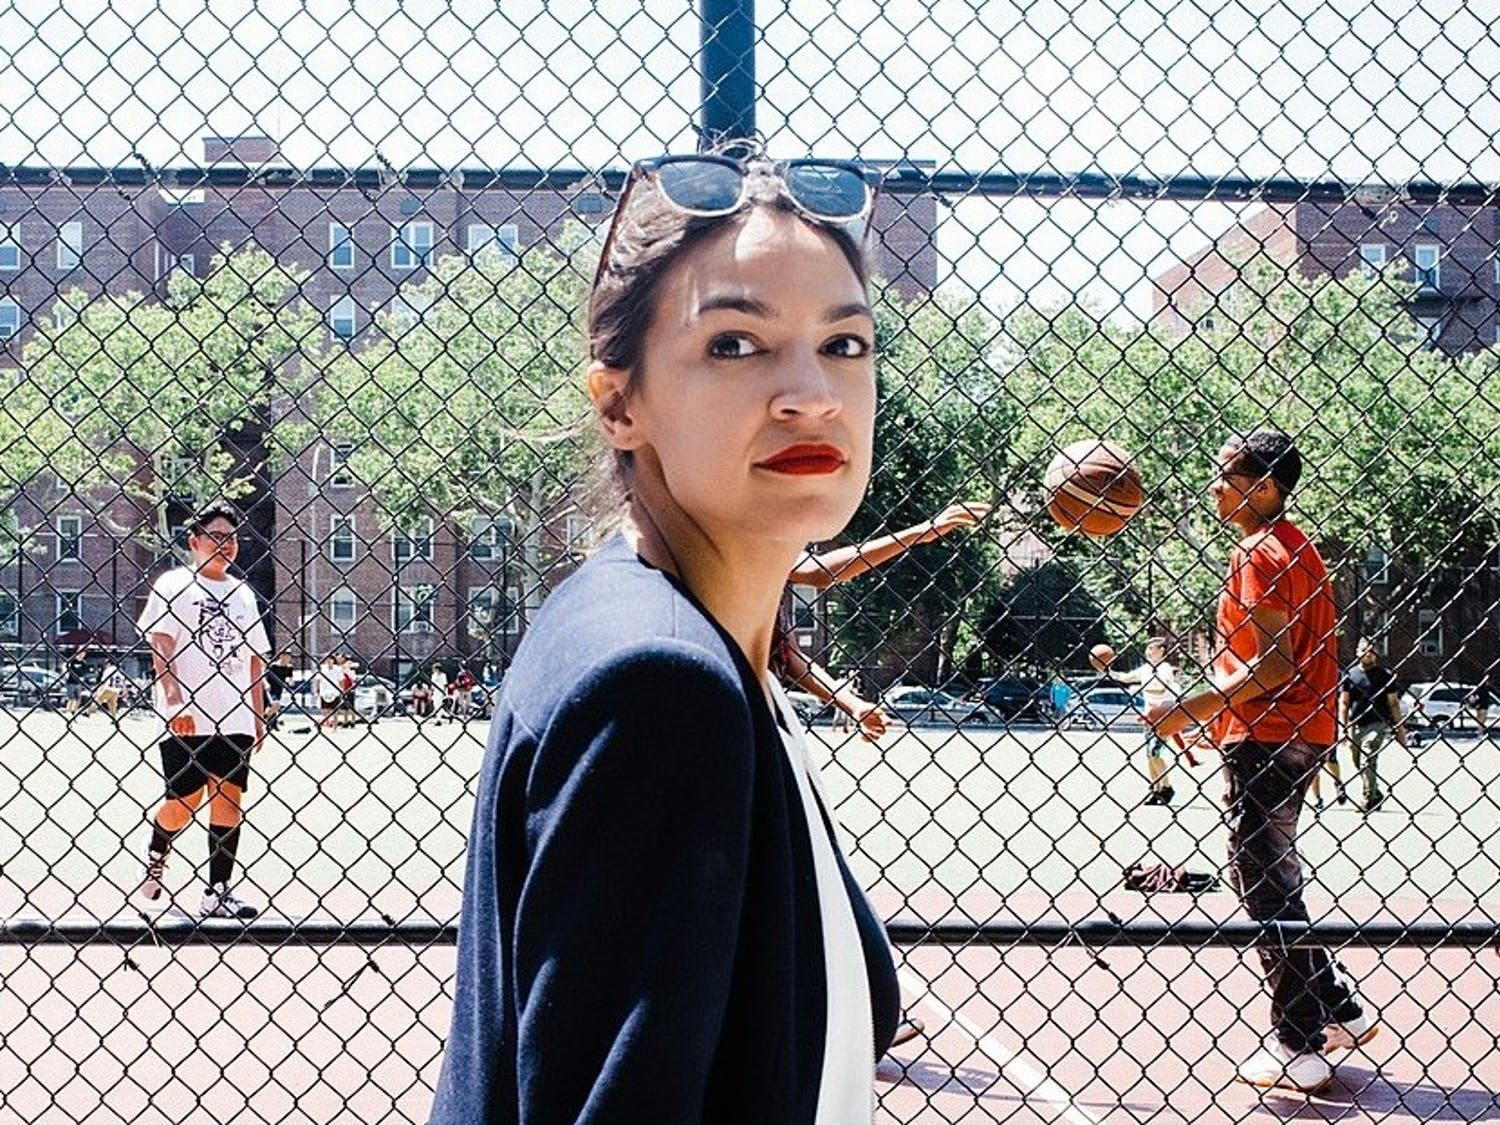 By being open about her working-class upbringing, Congresswoman-elect Alexandria Ocasio-Cortez brings much needed economic diversity to Congress.